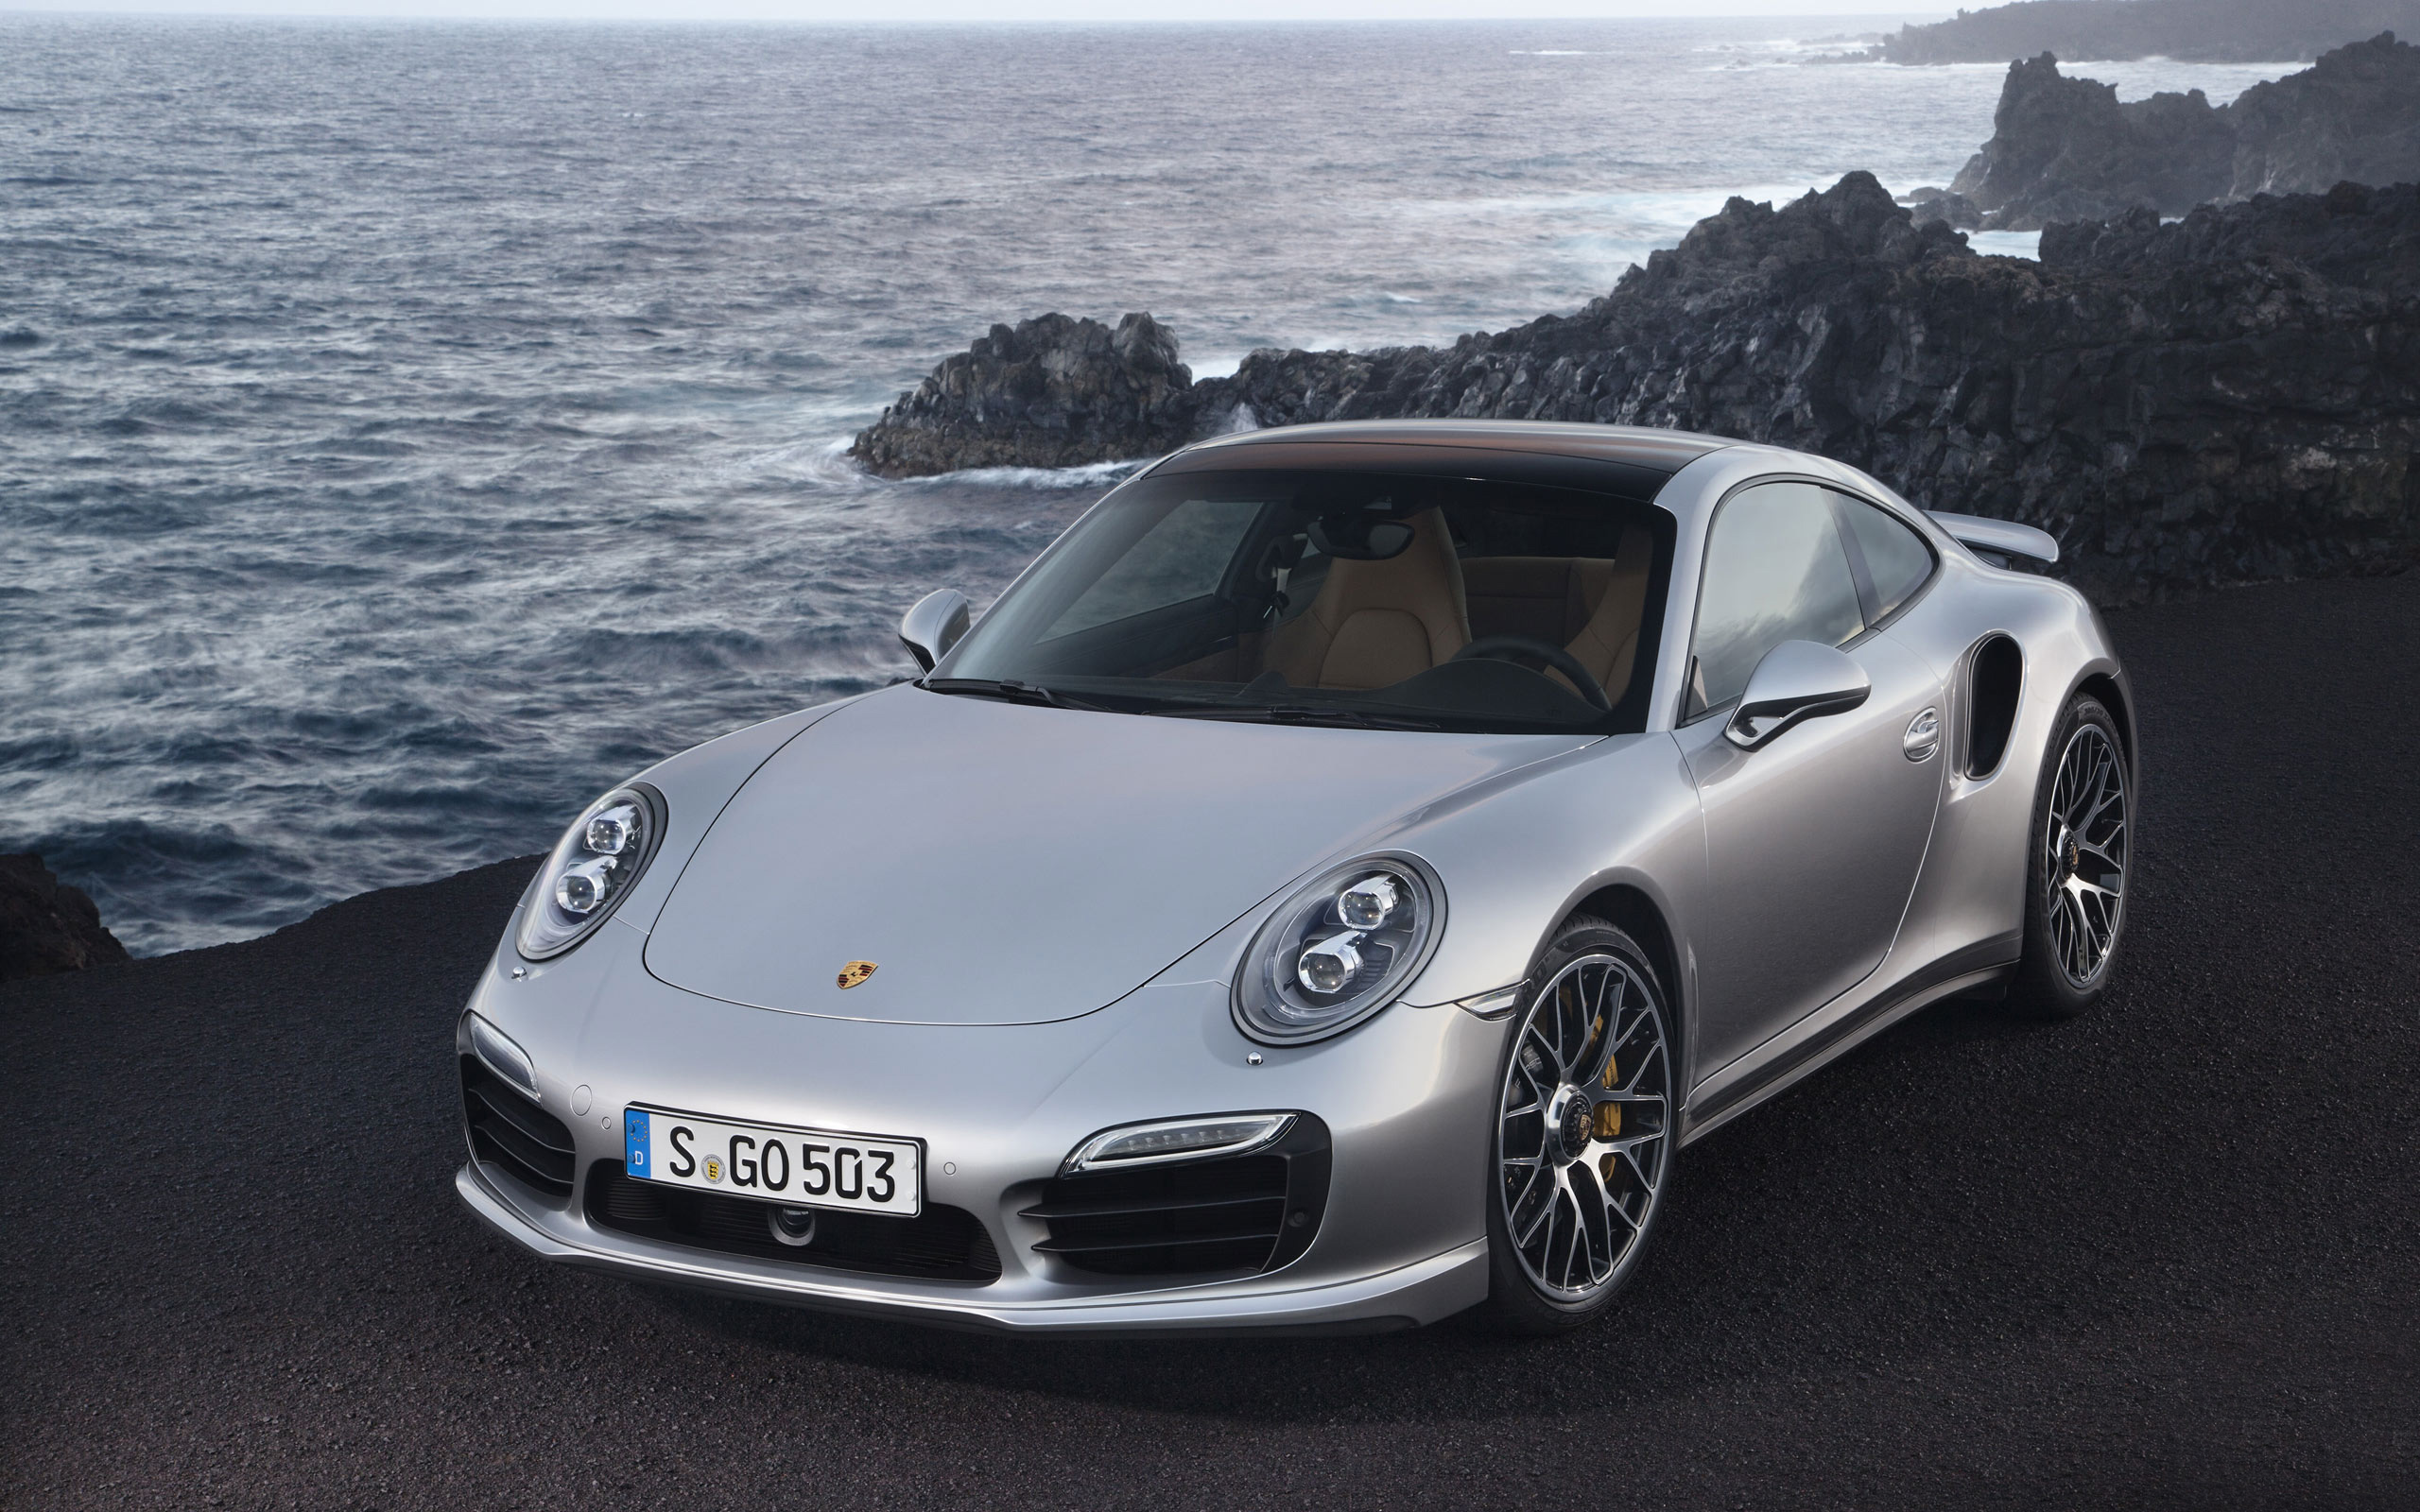 2014 porsche 911 turbo s wallpaper hd car wallpapers id 3410. Black Bedroom Furniture Sets. Home Design Ideas